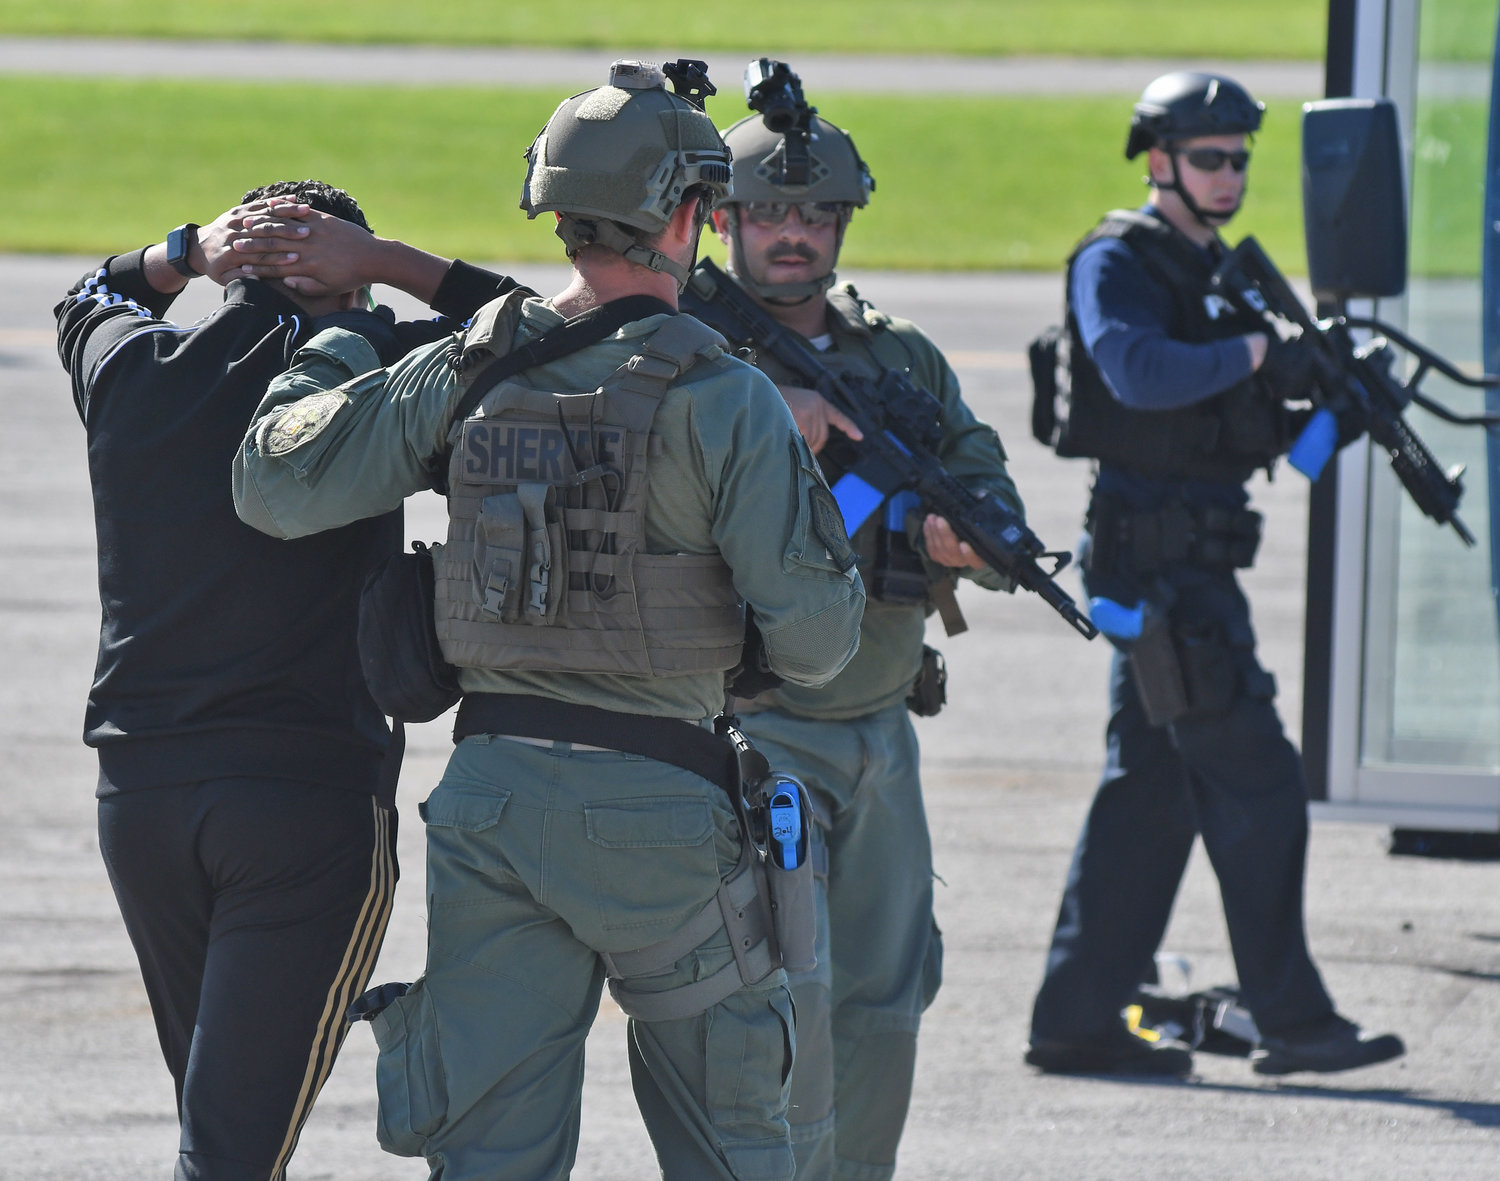 IN CUSTODY — A volunteer role-player holds his hands on his head while law enforcement escorts him from the scene of a training session at the Preparedness Training Center in Whitestown on Thursday.